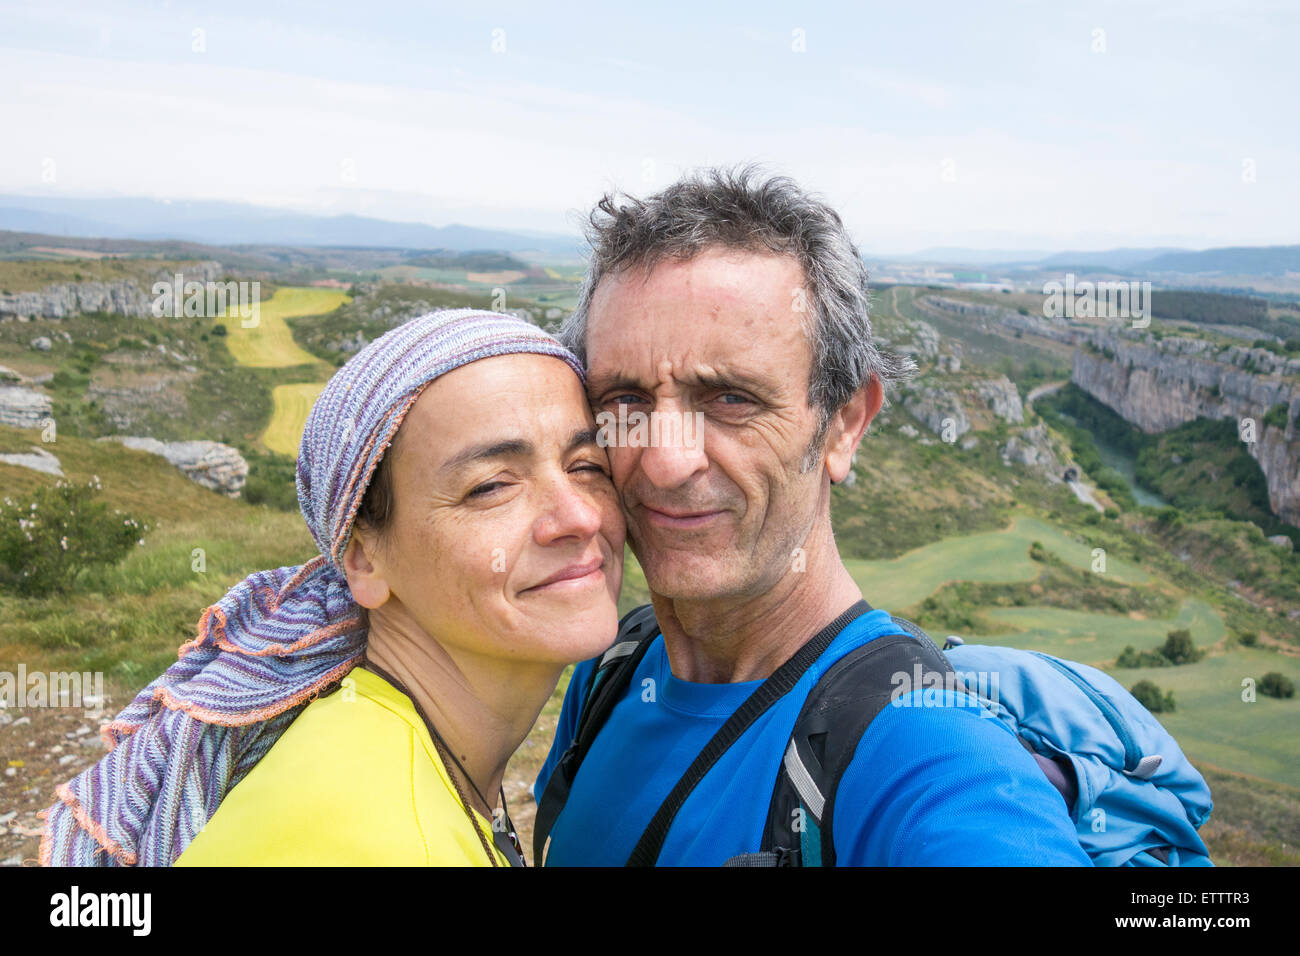 Mature backpacking couple taking selfie. - Stock Image